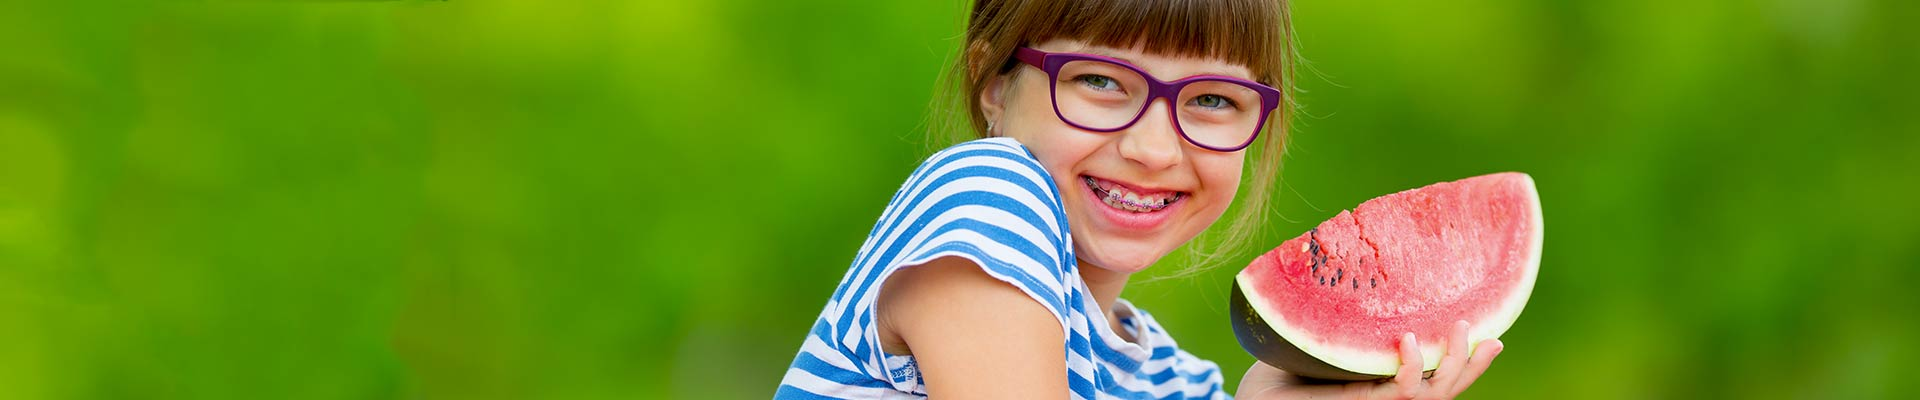 Early Orthodontics Figueroa Orthodontics Naperville Winnetka & Chicago, IL